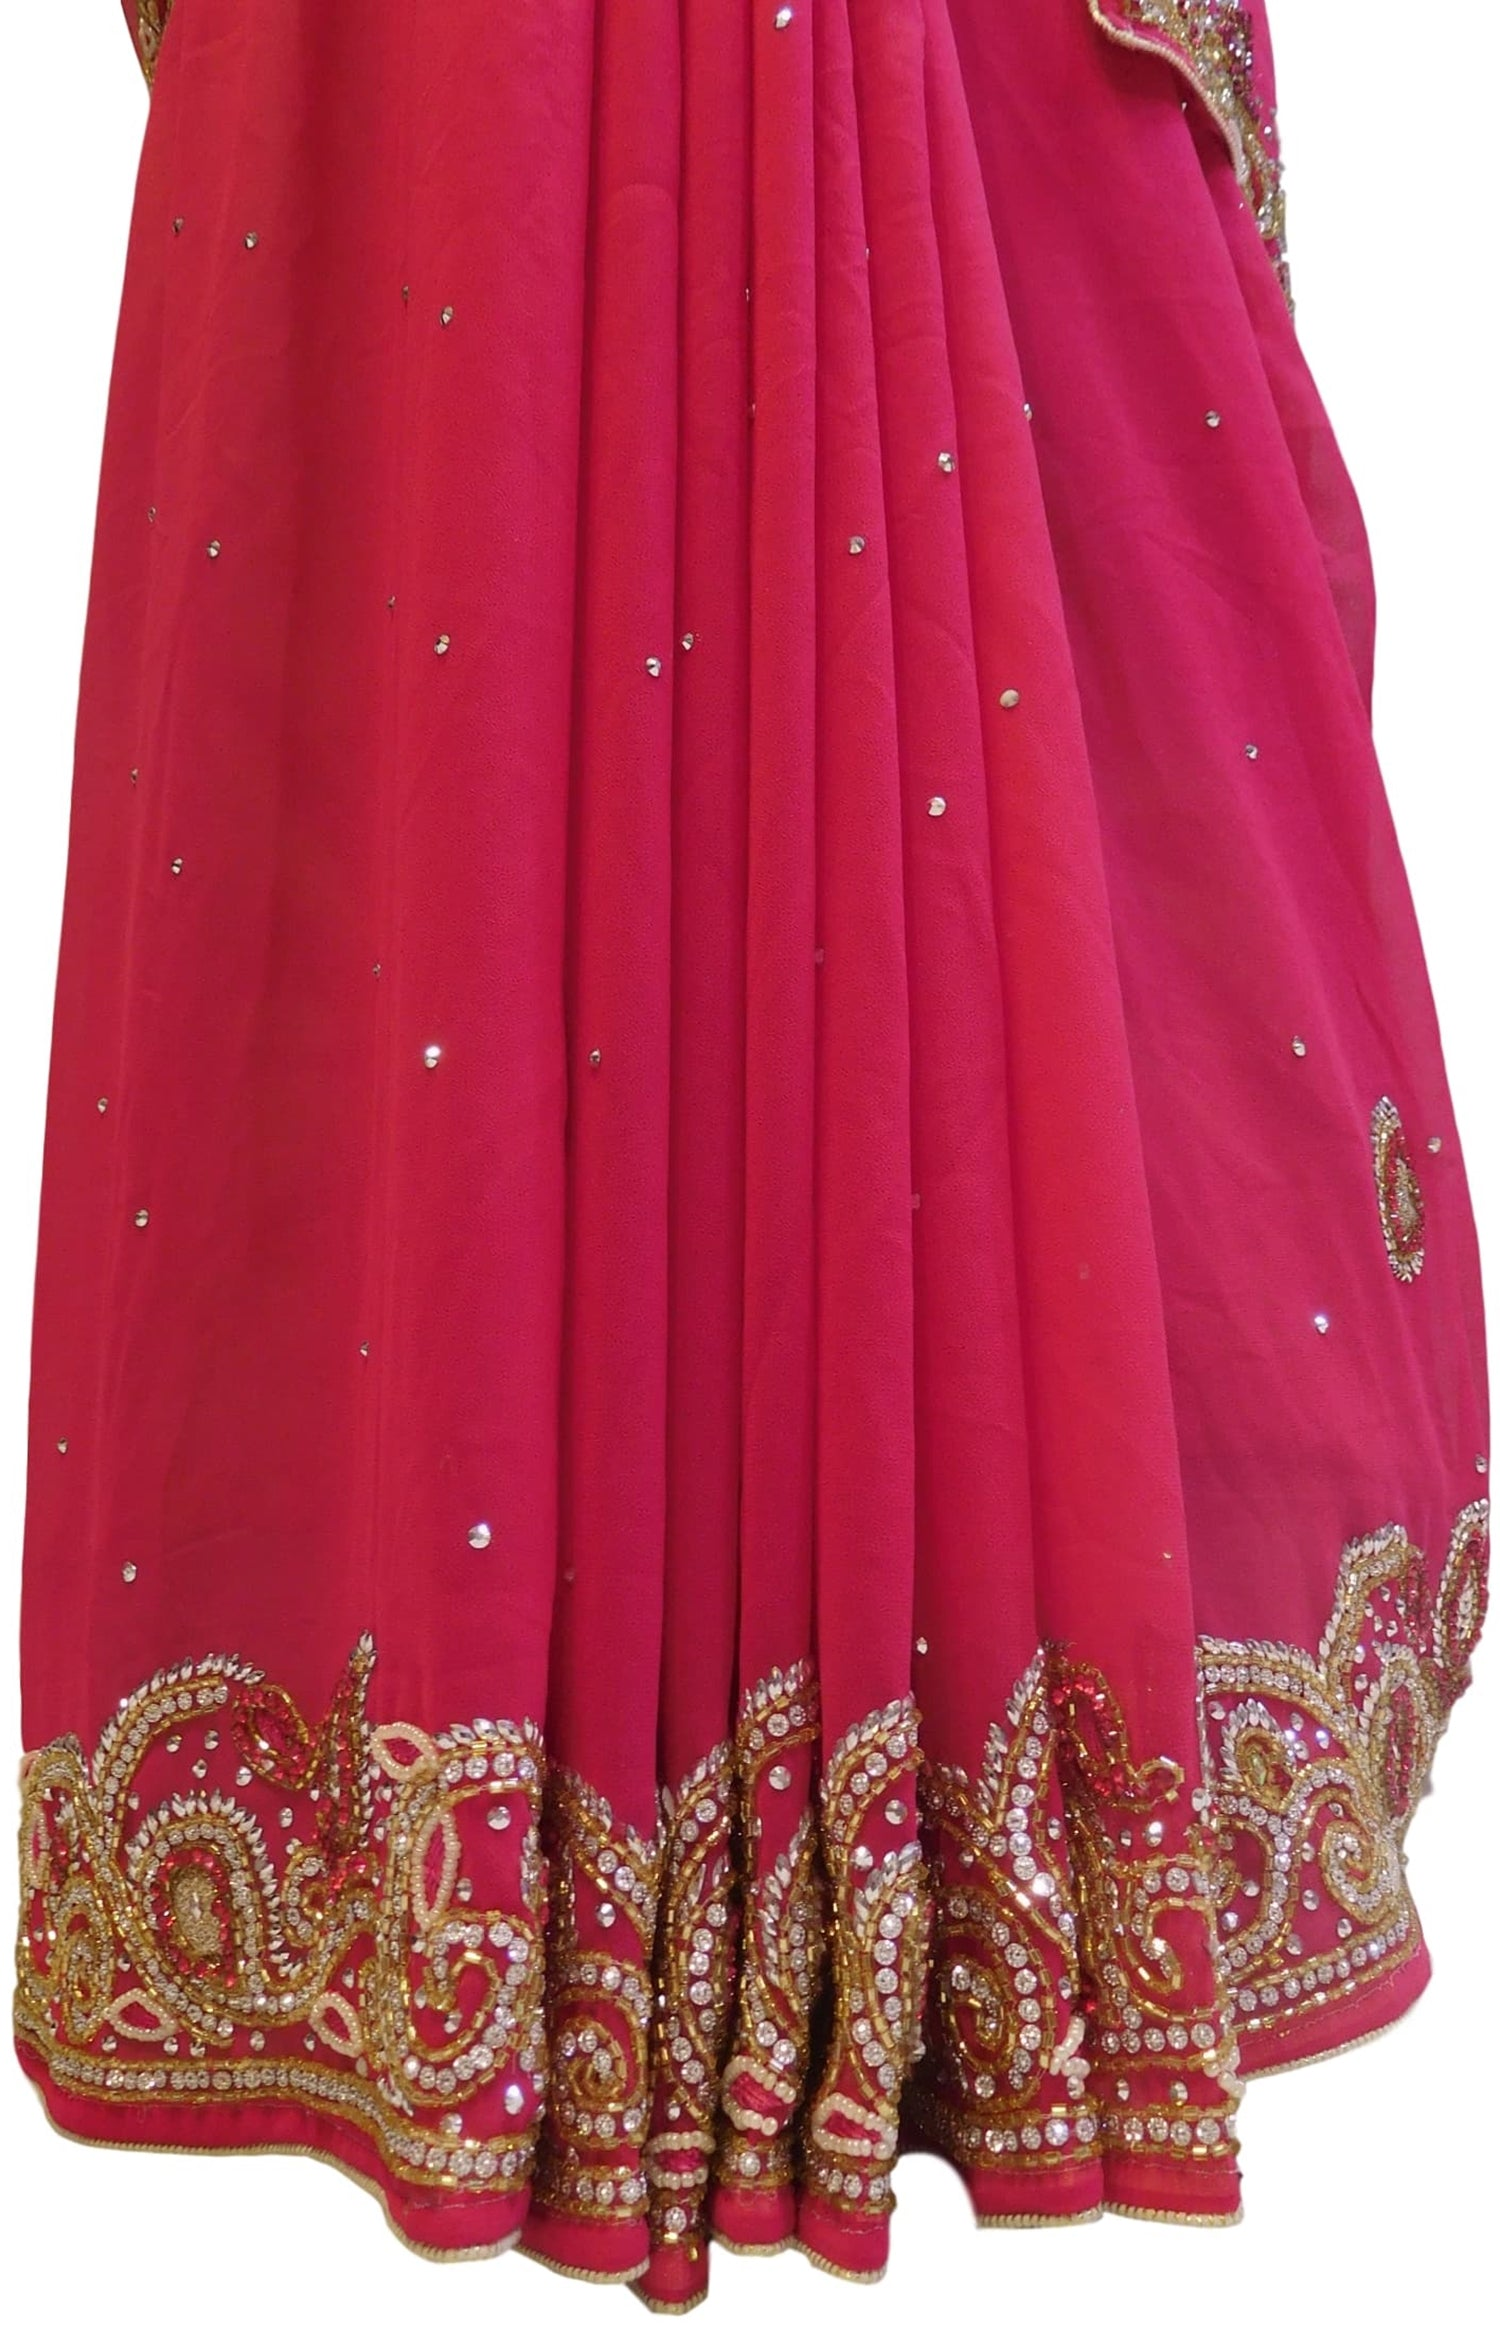 Pink Designer Georgette Hand Embroidery Cutdana Thread Beads Stone Work Saree Sari